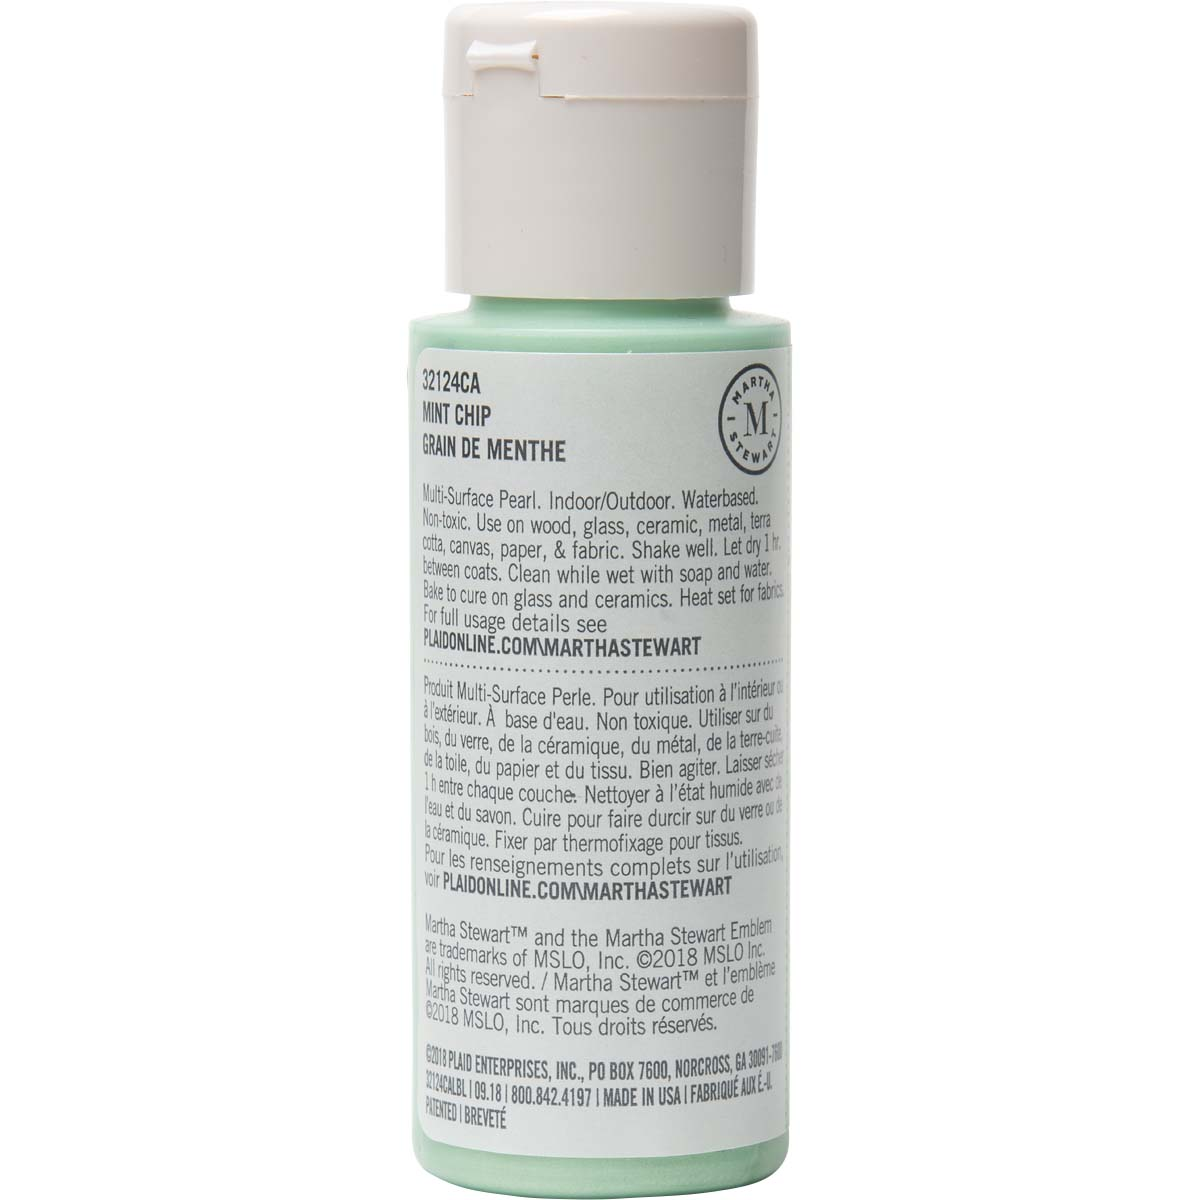 Martha Stewart ® Multi-Surface Pearl Acrylic Craft Paint - Mint Chip, 2 oz. - 32124CA